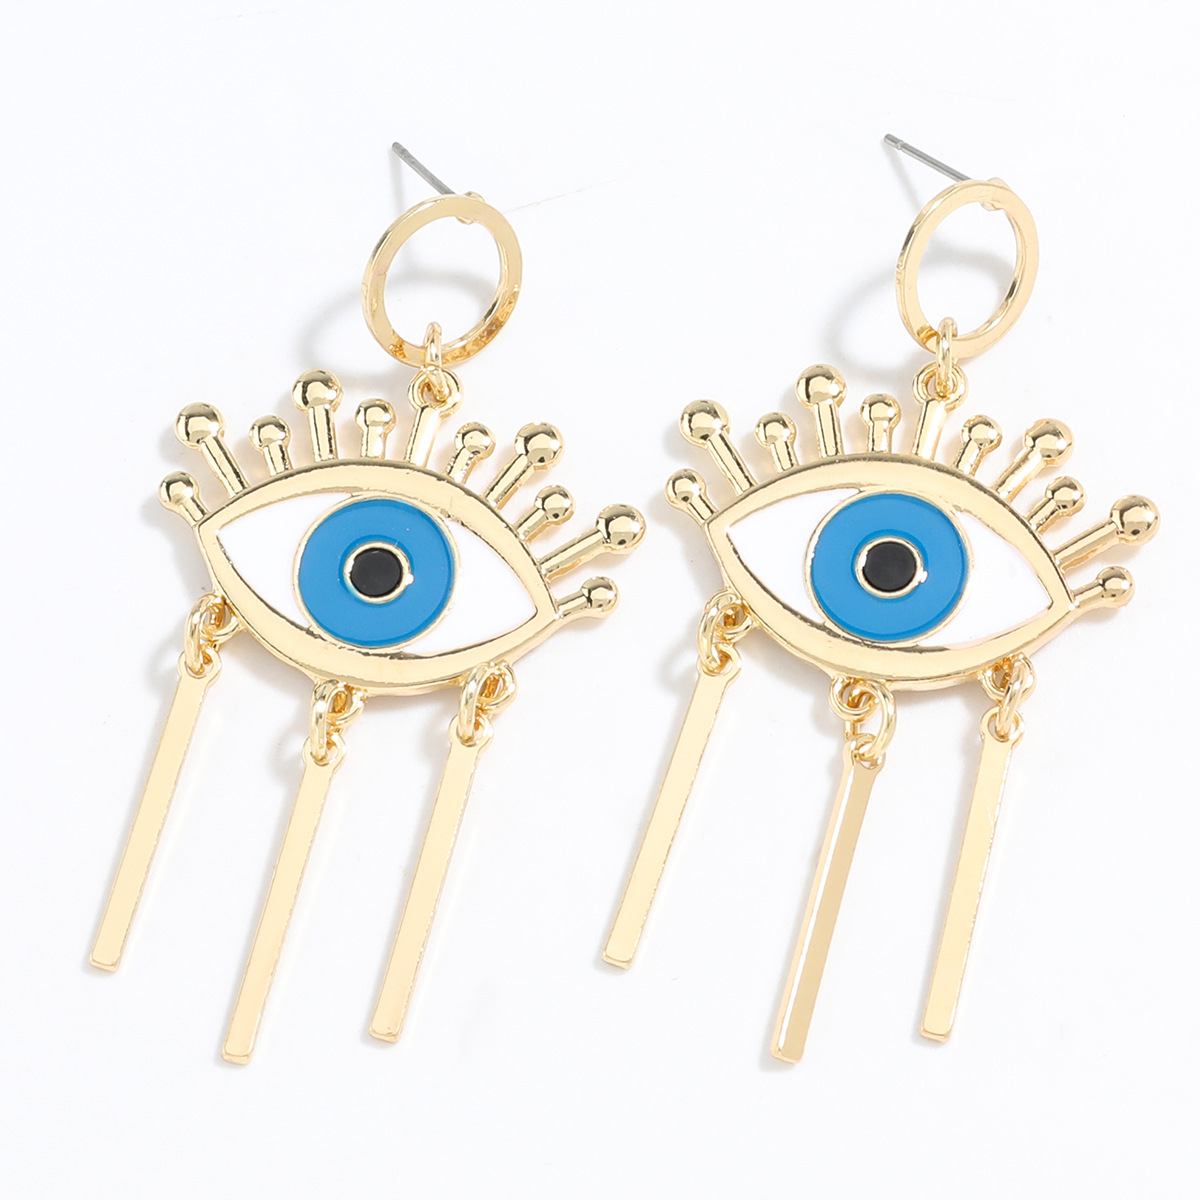 Exaggerated style creative alloy drip oil eye tassel retro earrings wholesale NHJE248104